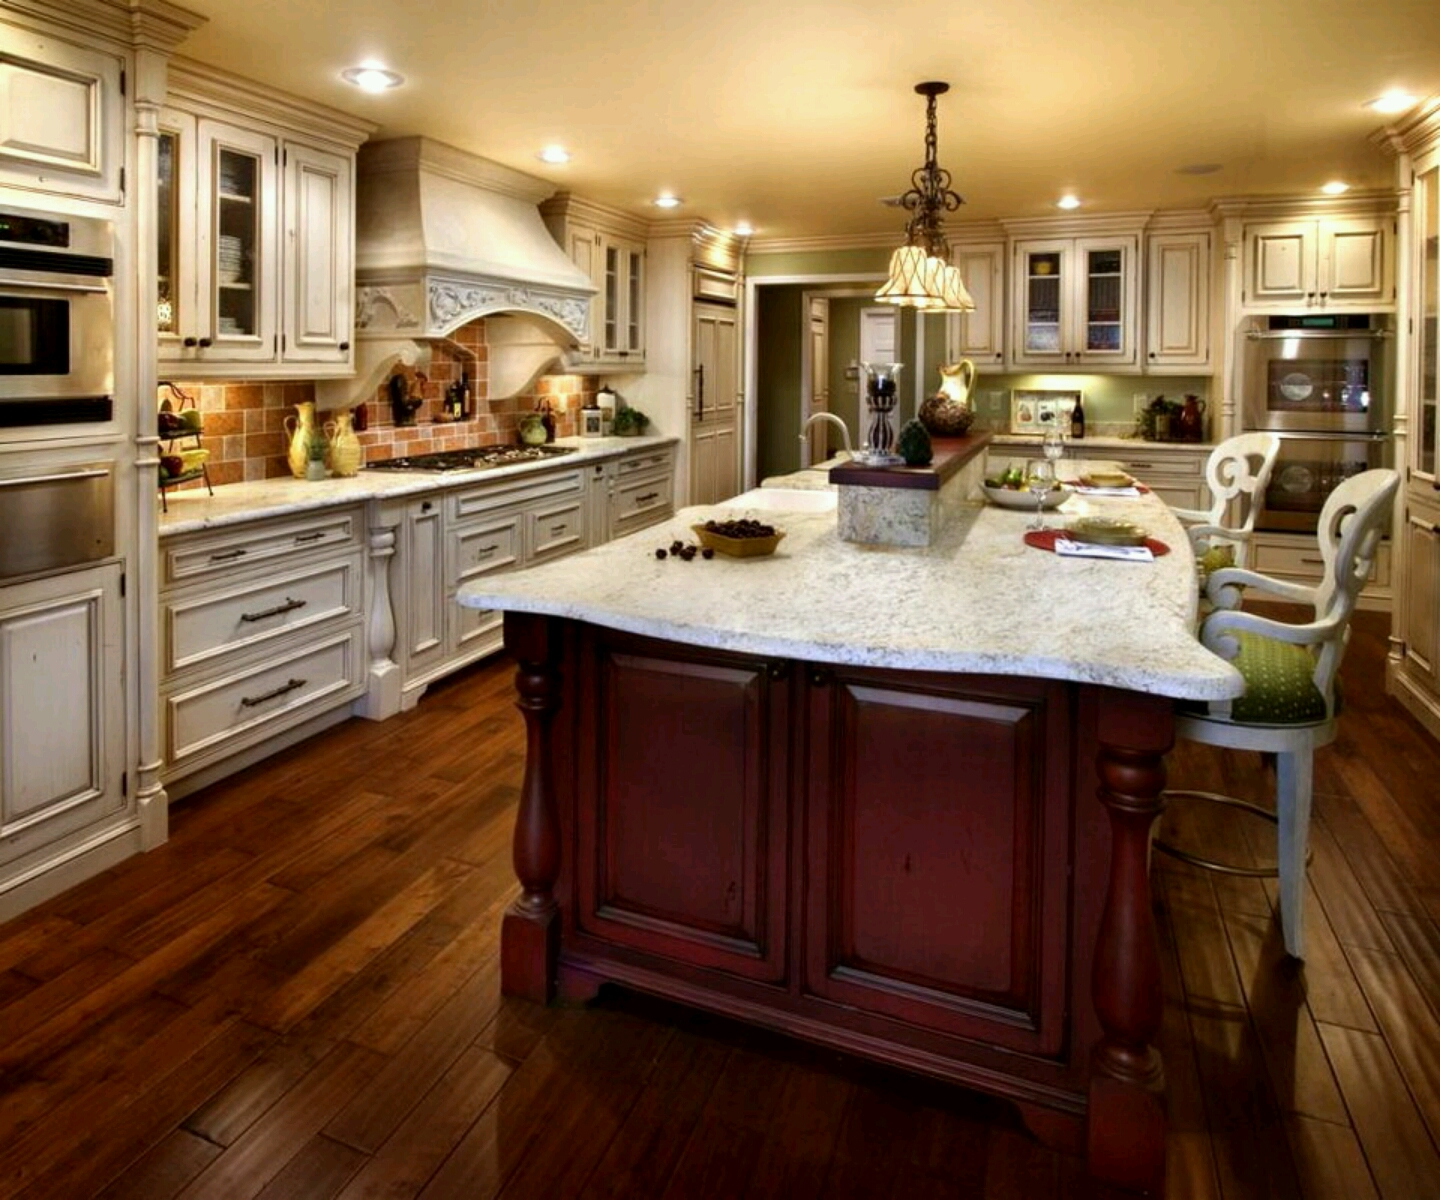 Luxury kitchen modern kitchen cabinets designs for Classic kitchen decor